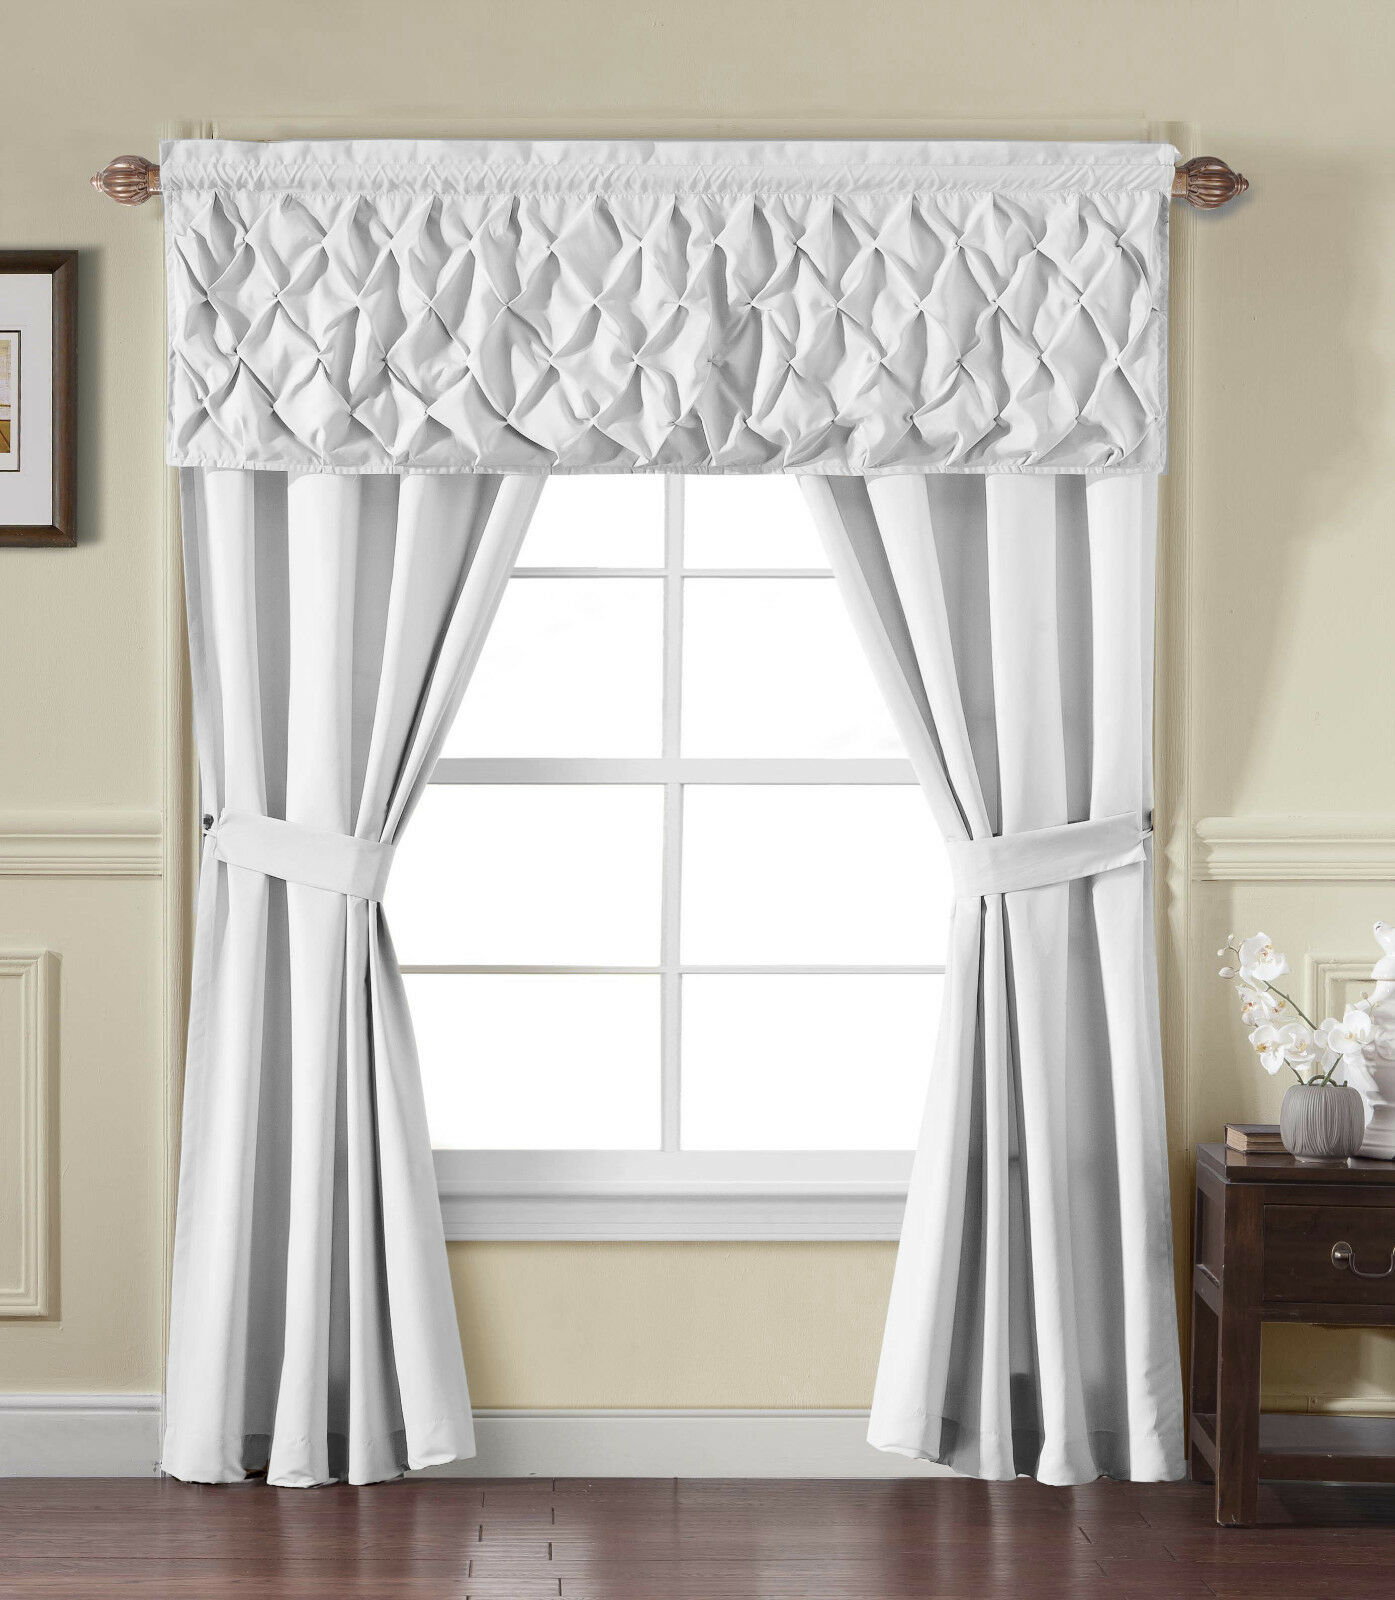 Alcove Home™ Carmen Complete 5 Pc. Window in a Bag Curtain Set - Assorted Colors